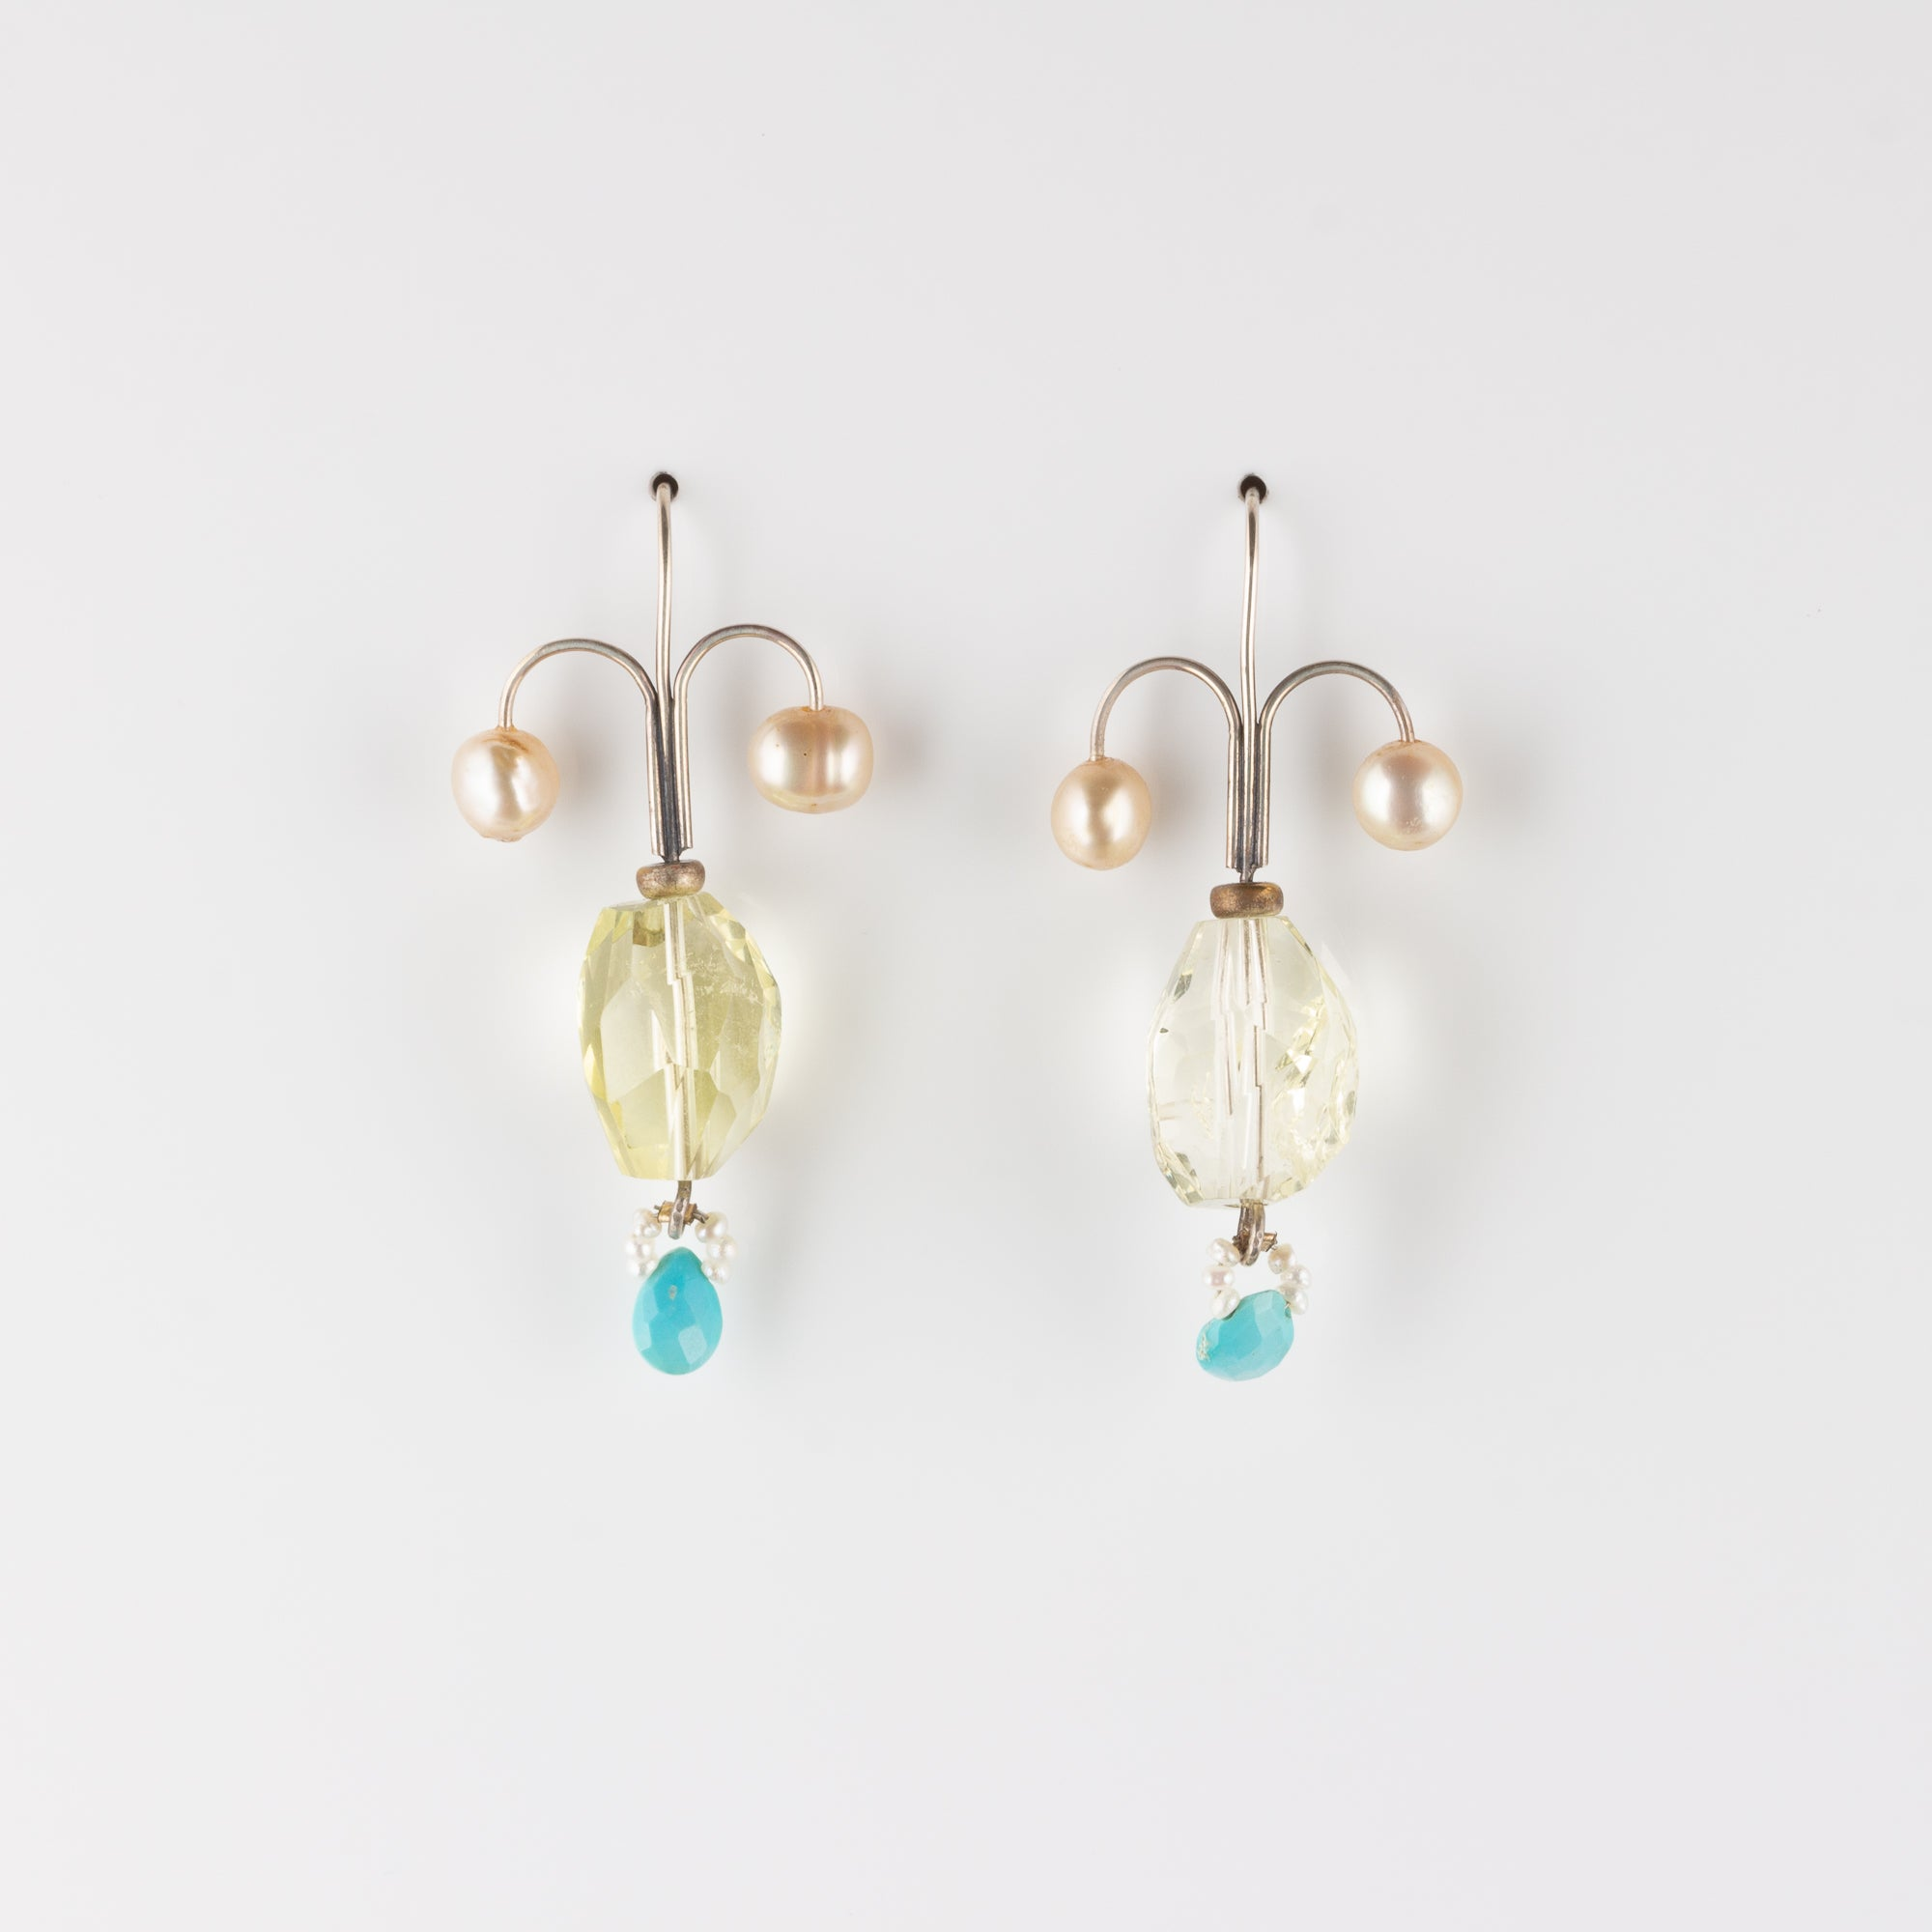 FIONA // PEARL, LEMON QUARTZ & TURQUOISE EARRINGS